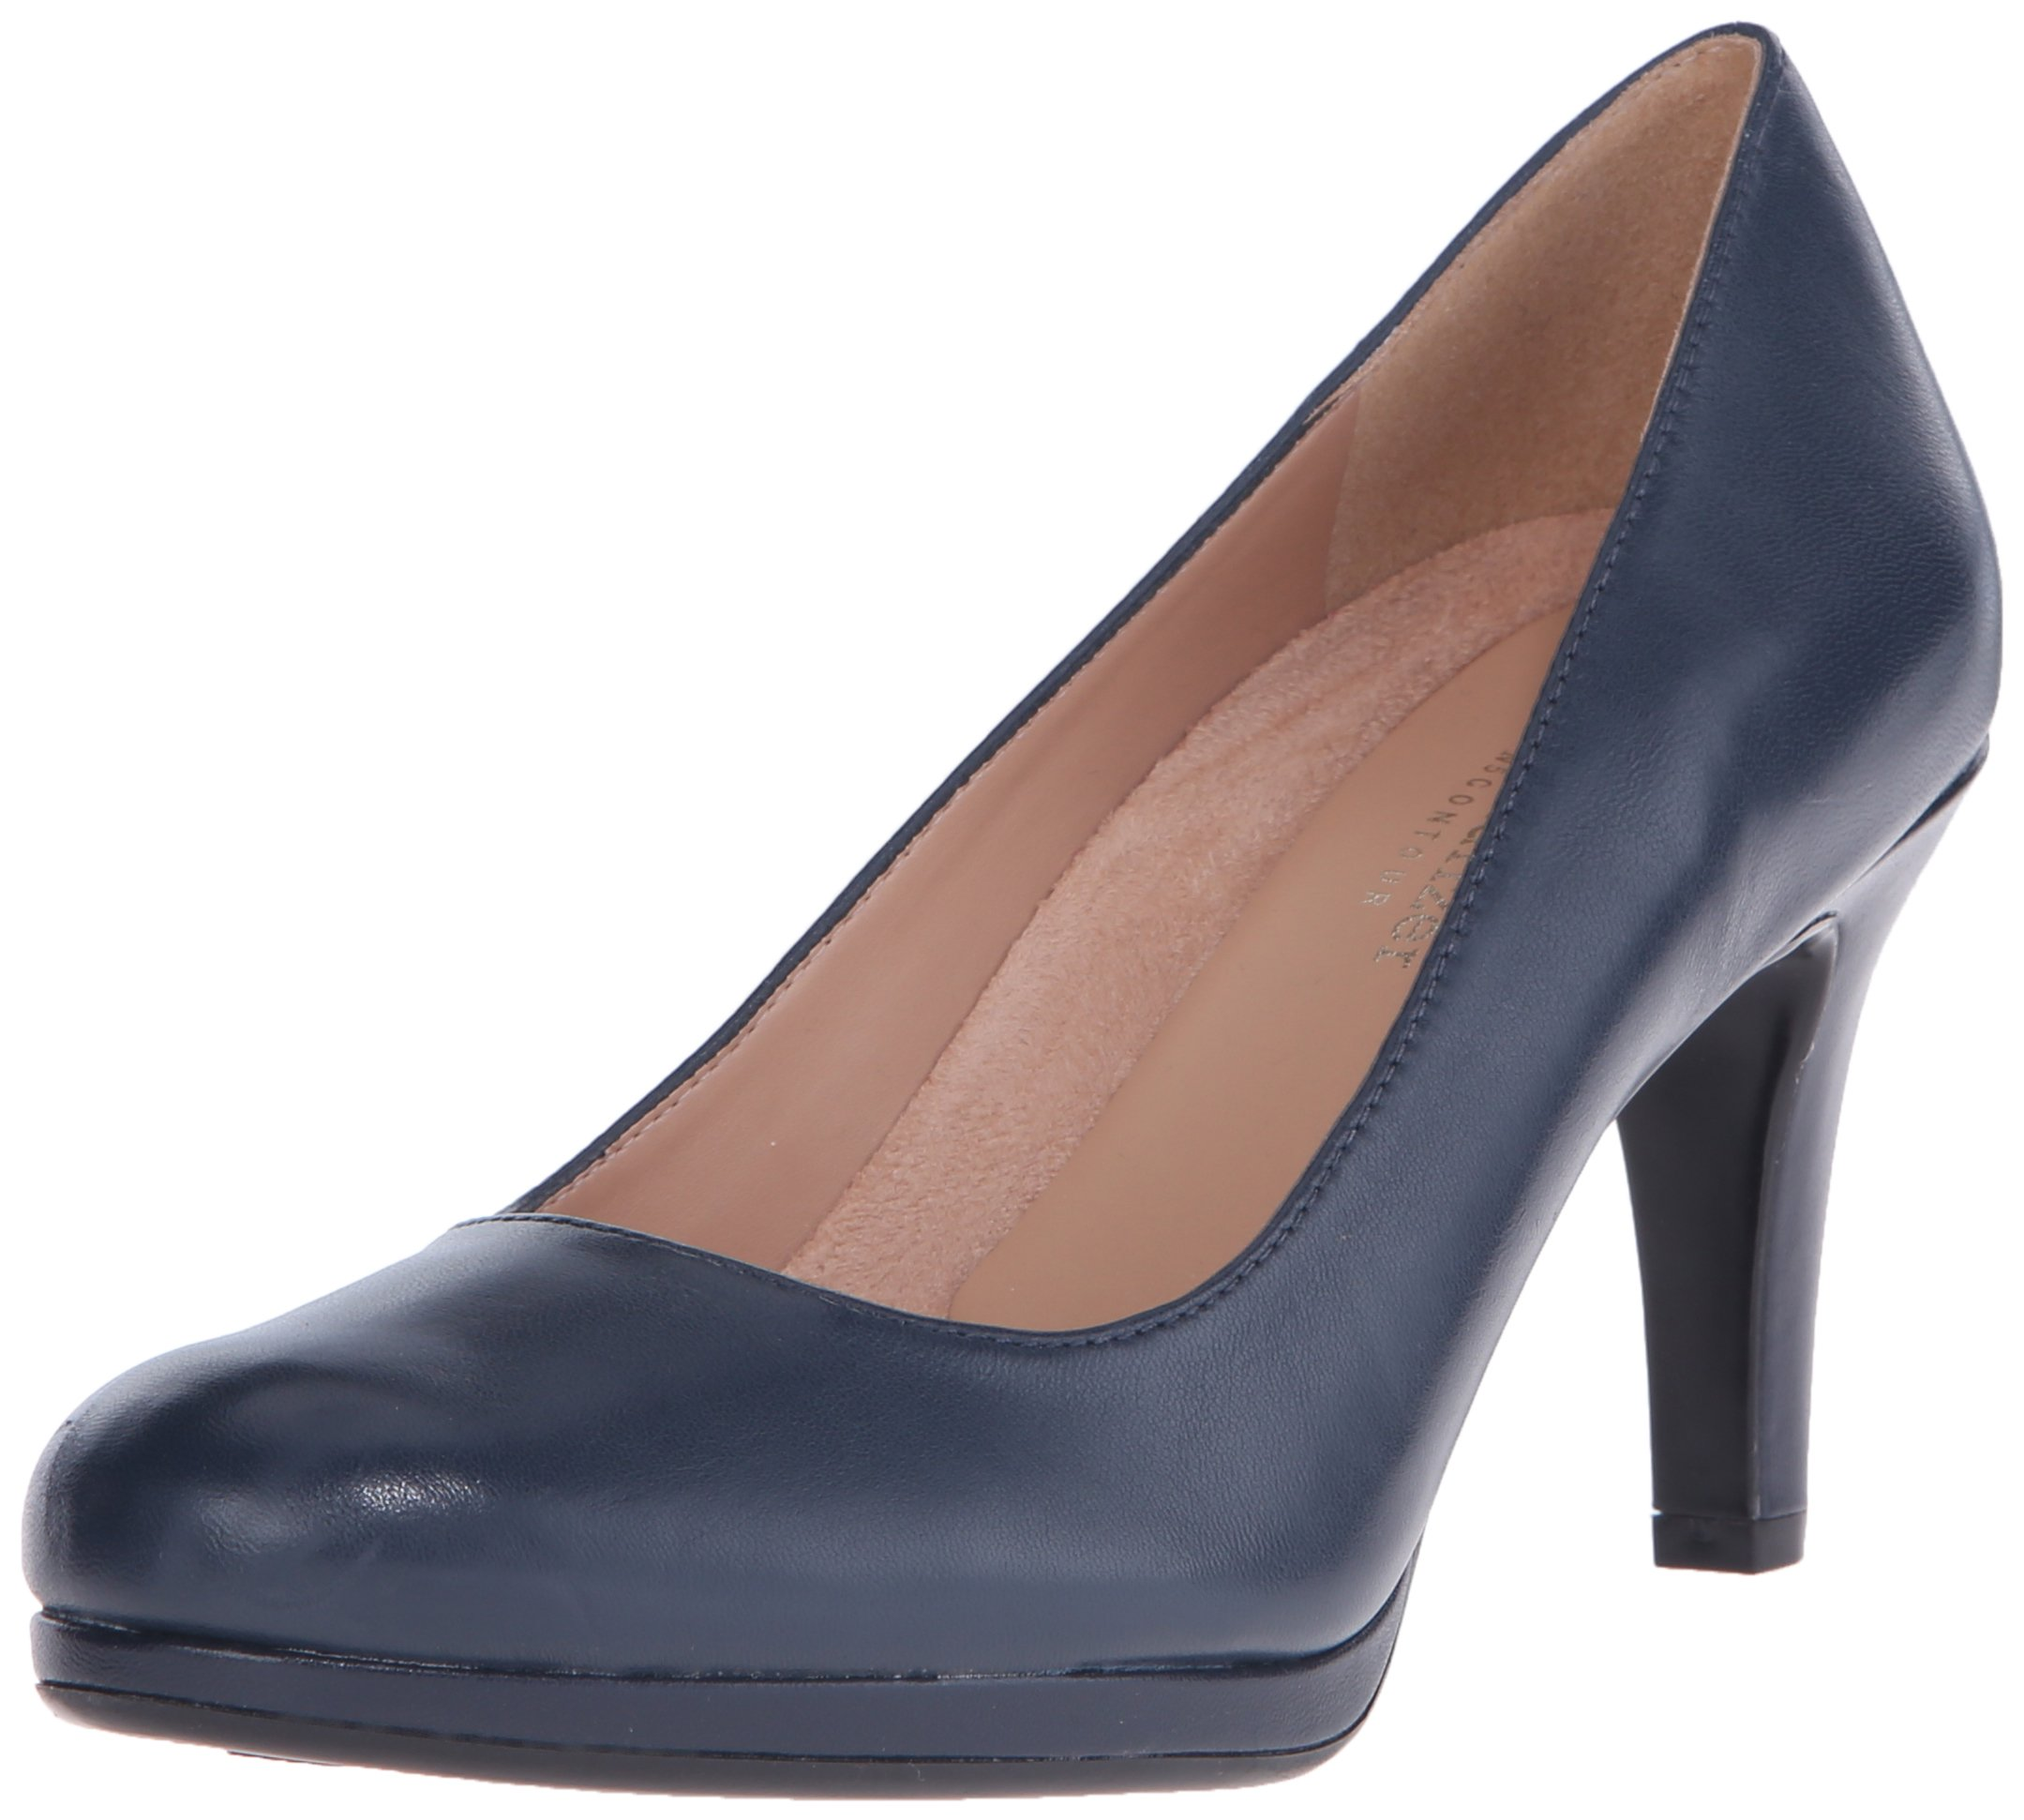 Naturalizer Women's Michelle Dress Pump Navy 6.5 M US